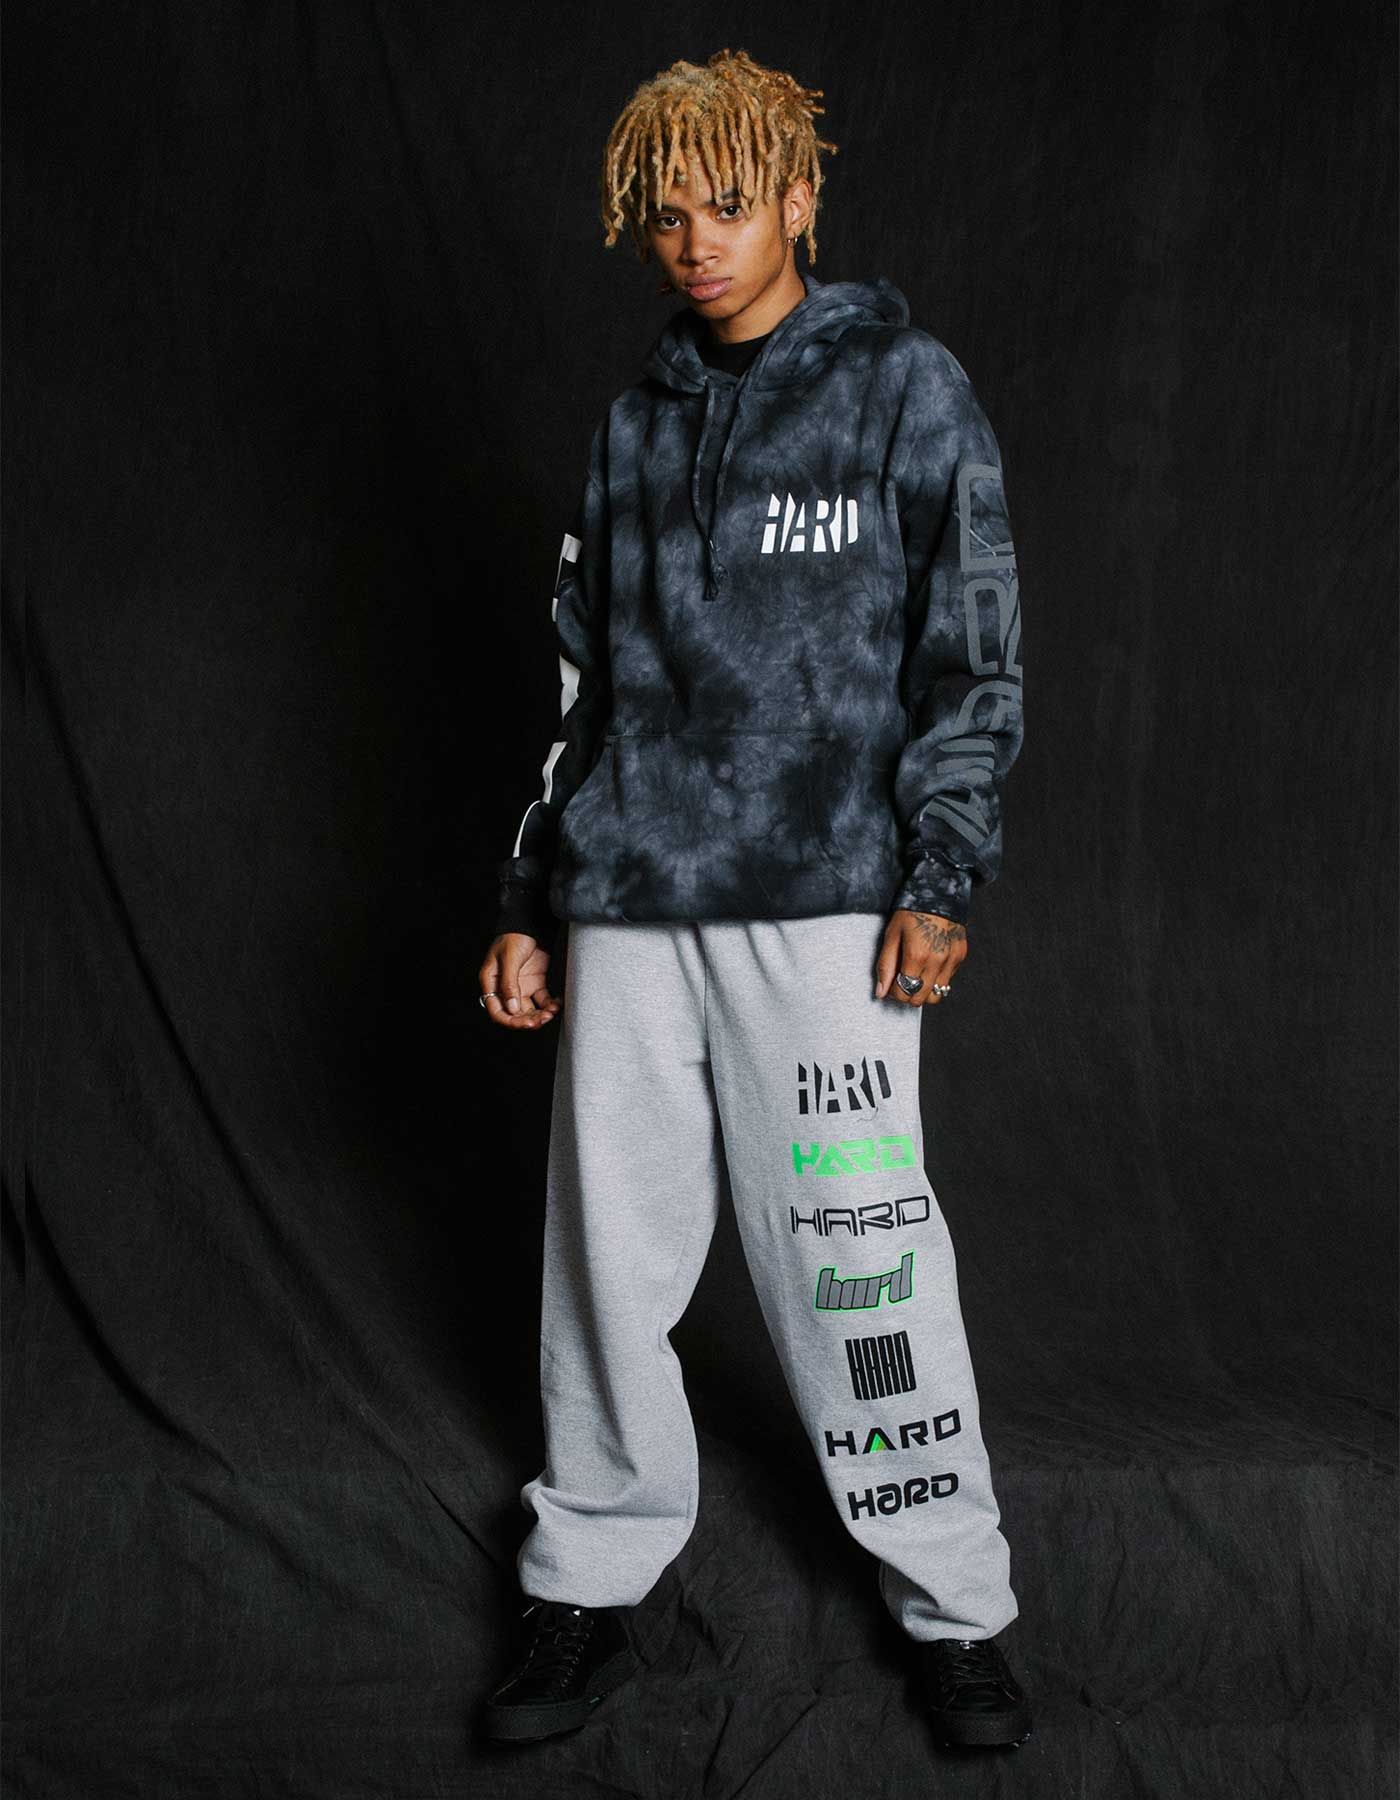 HARD Summer Logos Sweatpants